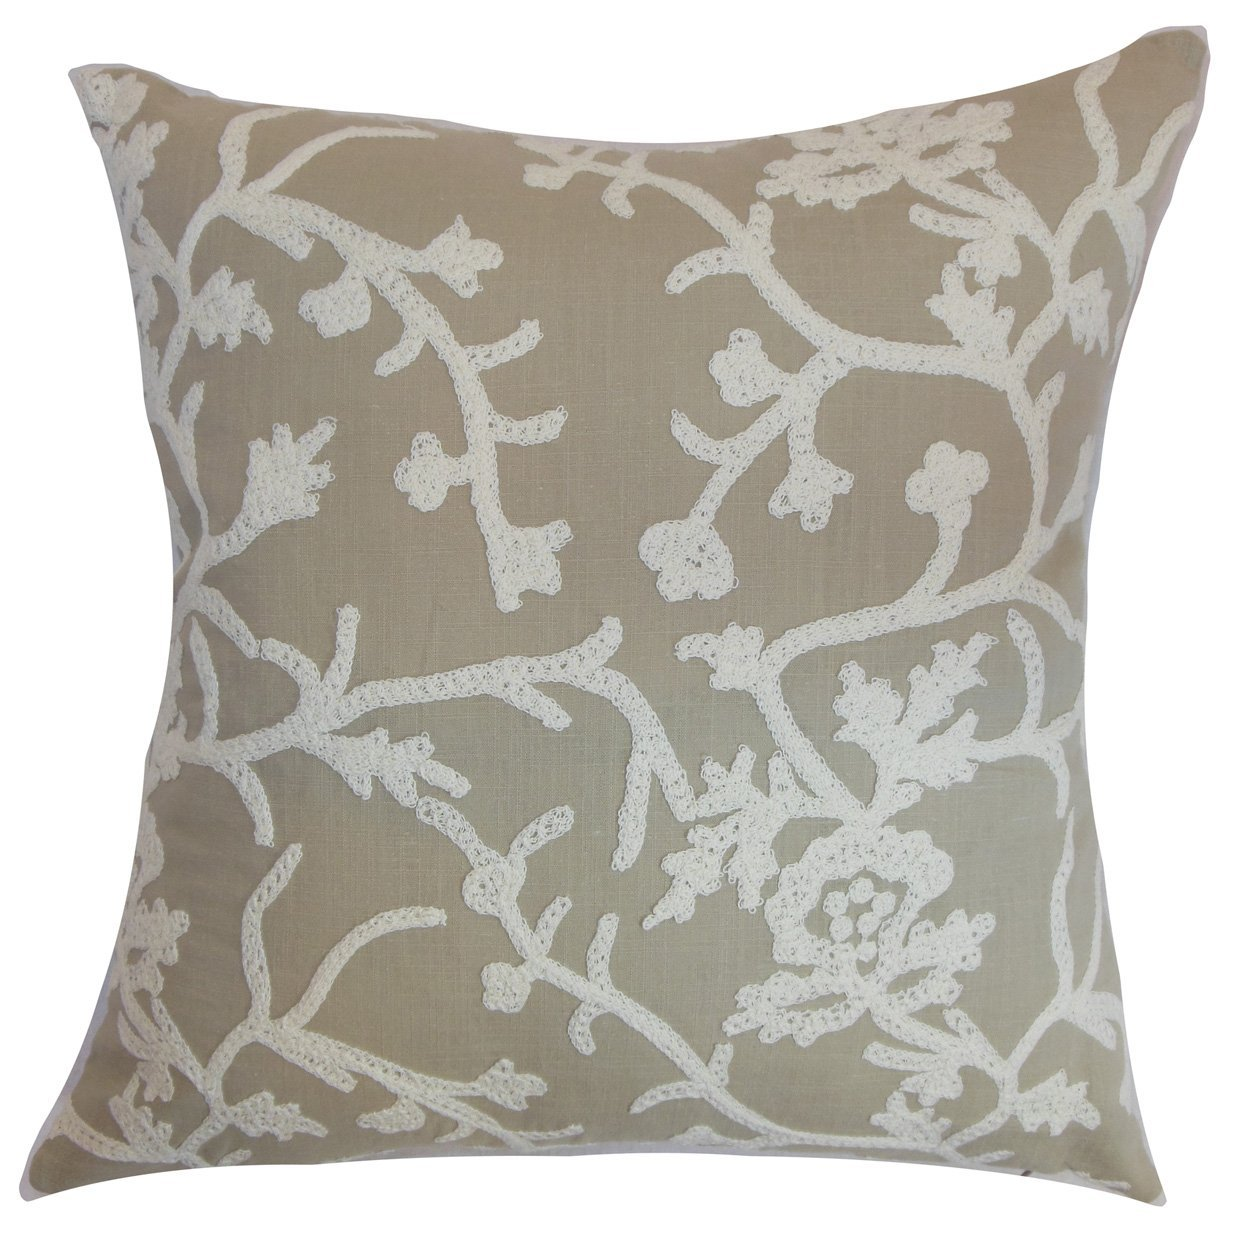 European//26 x 26 The Pillow Collection EURO-D-51131-PUMICE-C100 Pumice Paksane Floral Bedding Sham